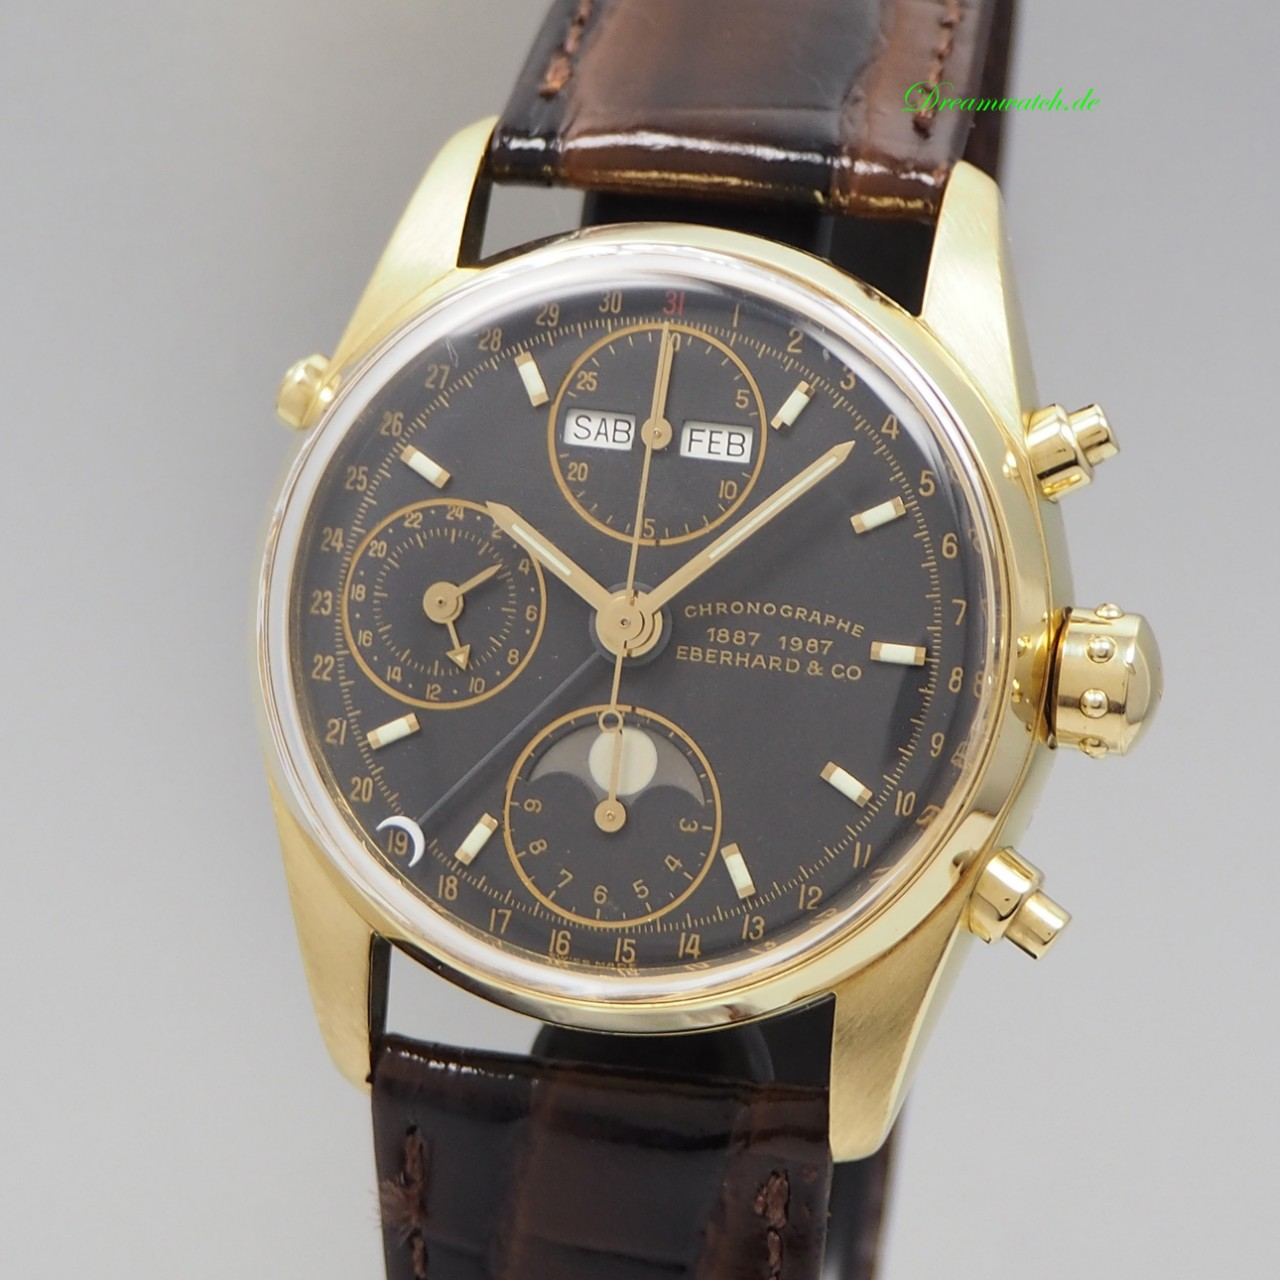 Eberhard & Co Navy Master Chronograph -Gold 18k/ 750